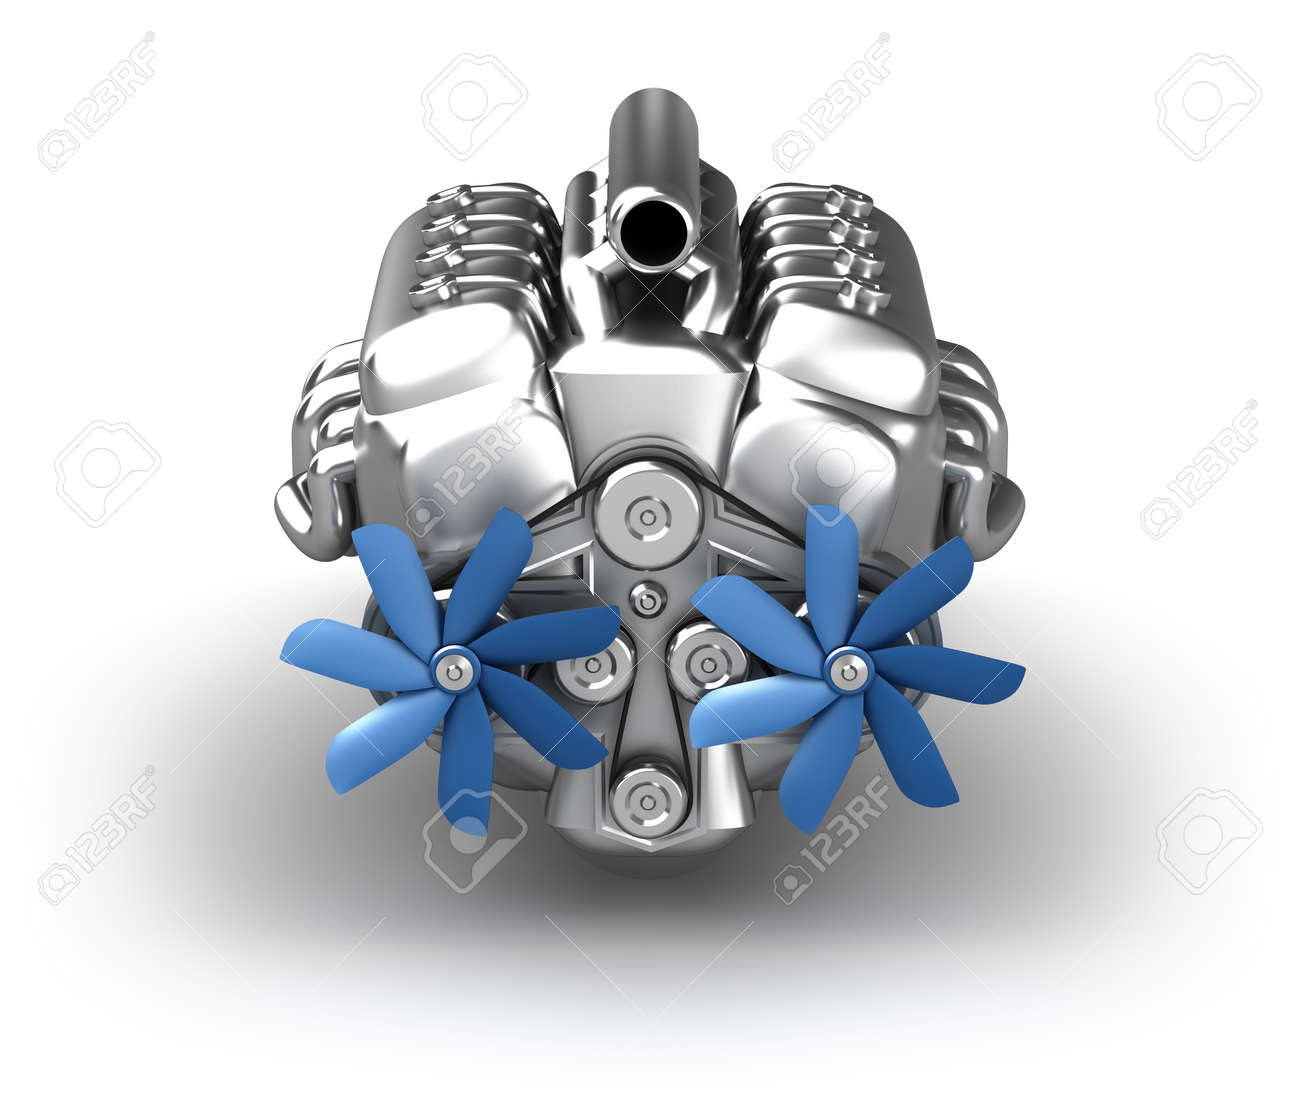 engine over white  My own design  Front view Stock Photo - 15406454